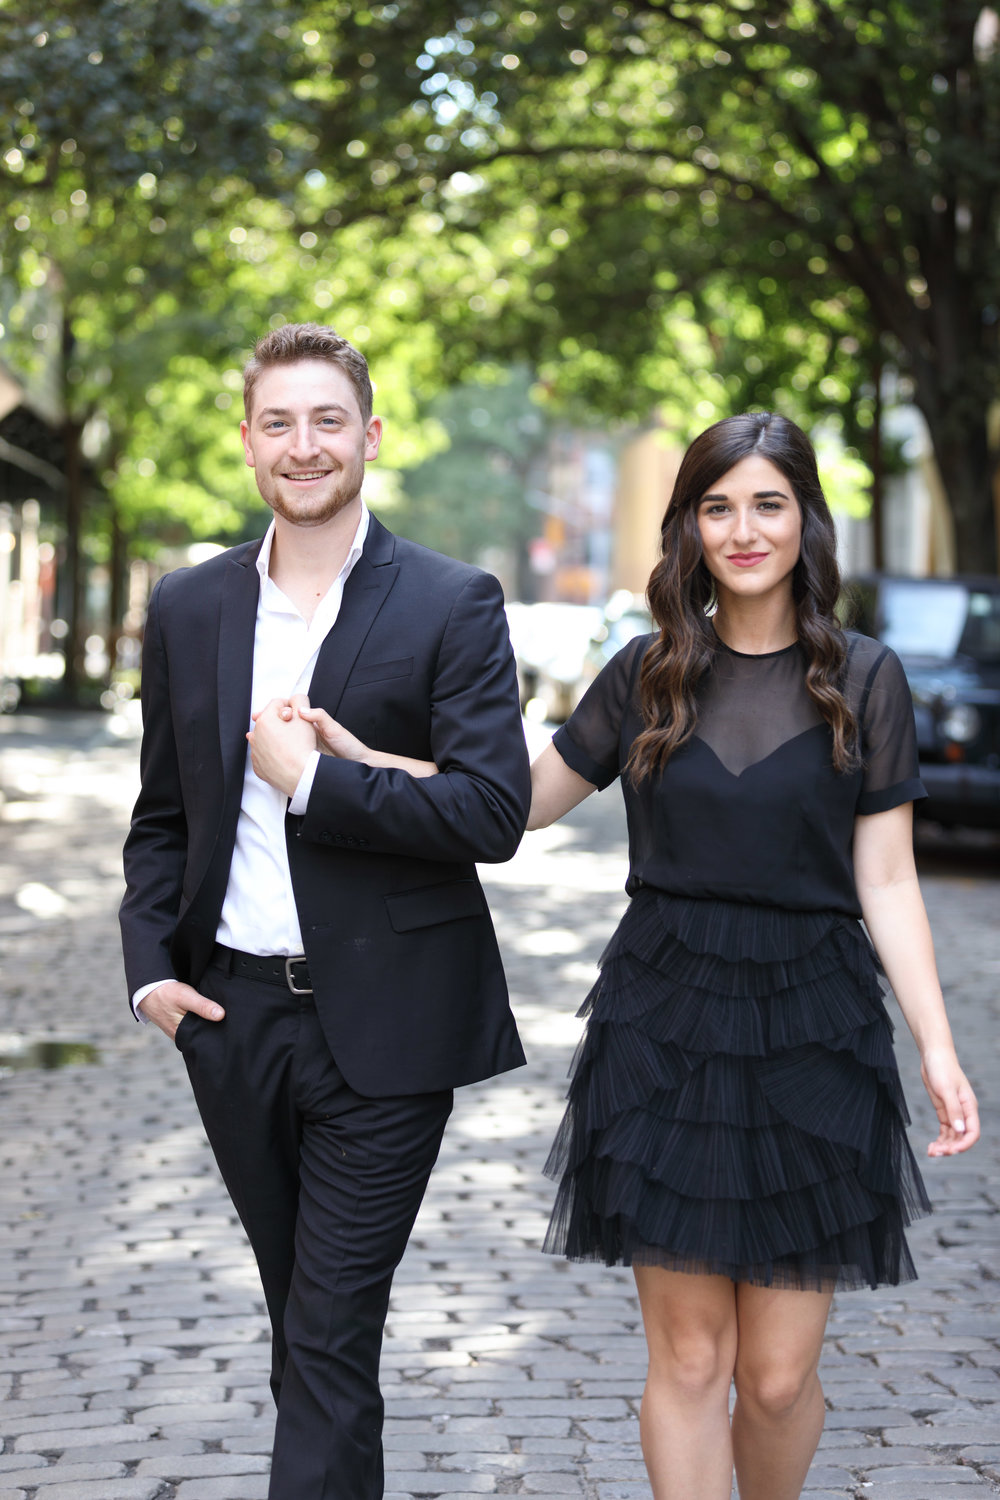 Posing Tips For Your Wedding Day+Esther+Santer+Fashion+Blog+NYC+Street+Style+Blogger+Outfits+OOTD+Trendy+Engagement+Shoot+Photoshoot+Lilian+Haidar+Photography+Wedding+Season+Date+Shoes+Dress+Suit+Fancy+Formal+Happy+Smile+Heels+Hair Girl Love Couple.jpg